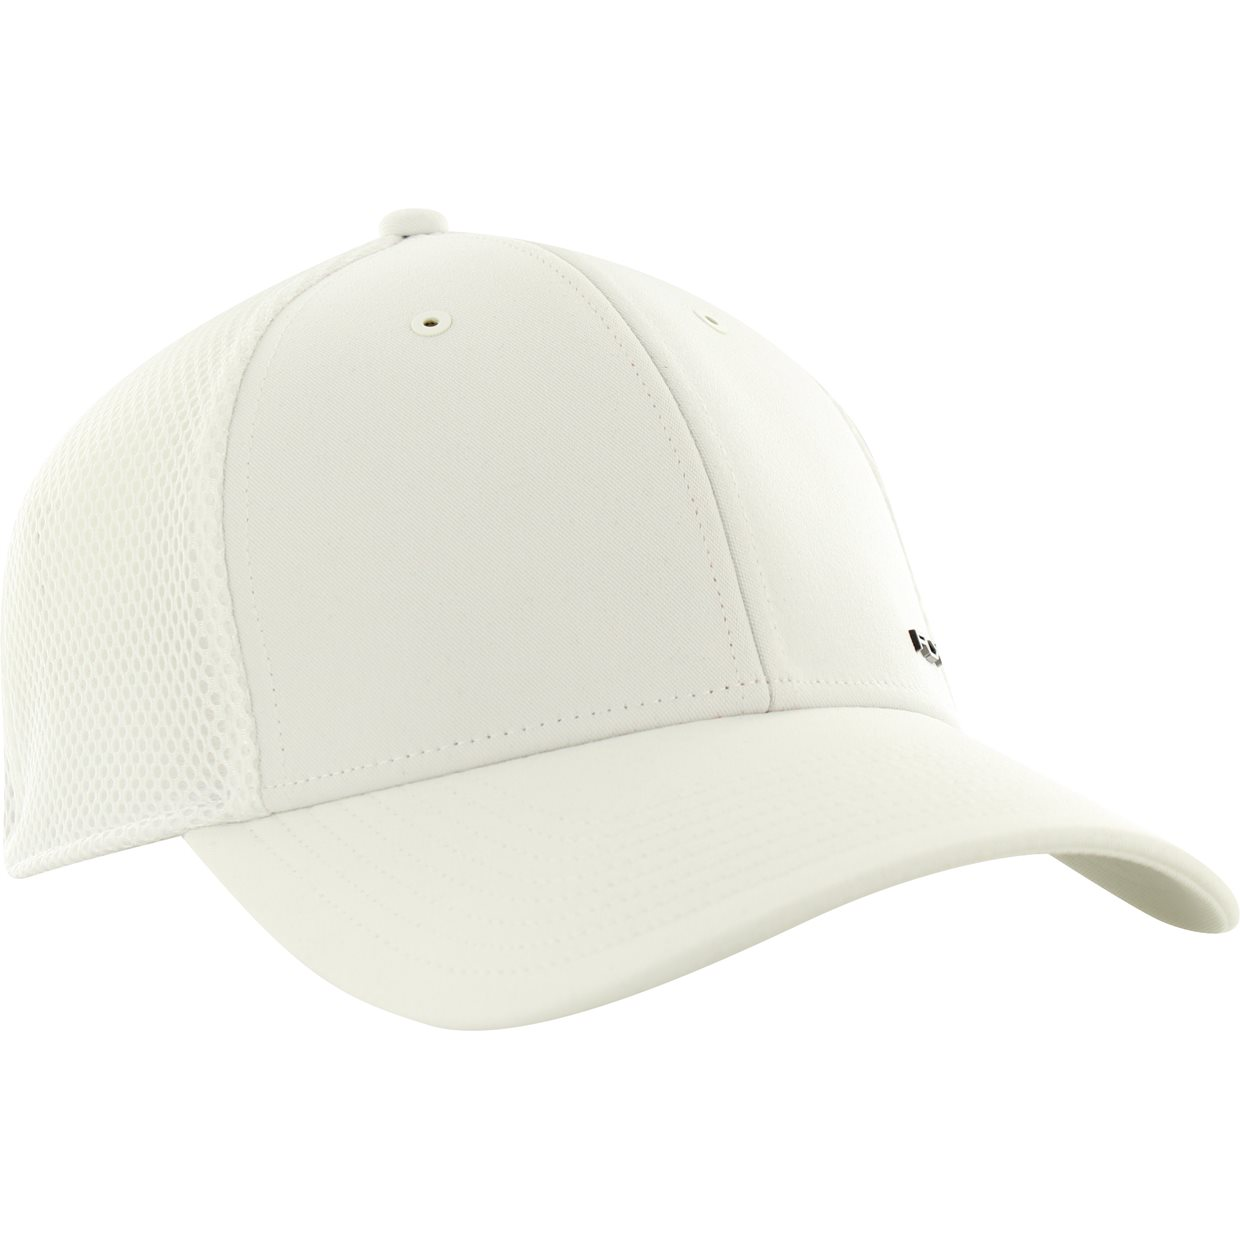 a5c45e388cead RLX Golf Poly Twill Flex Fit Headwear in Pure White Mfr. Close-Out